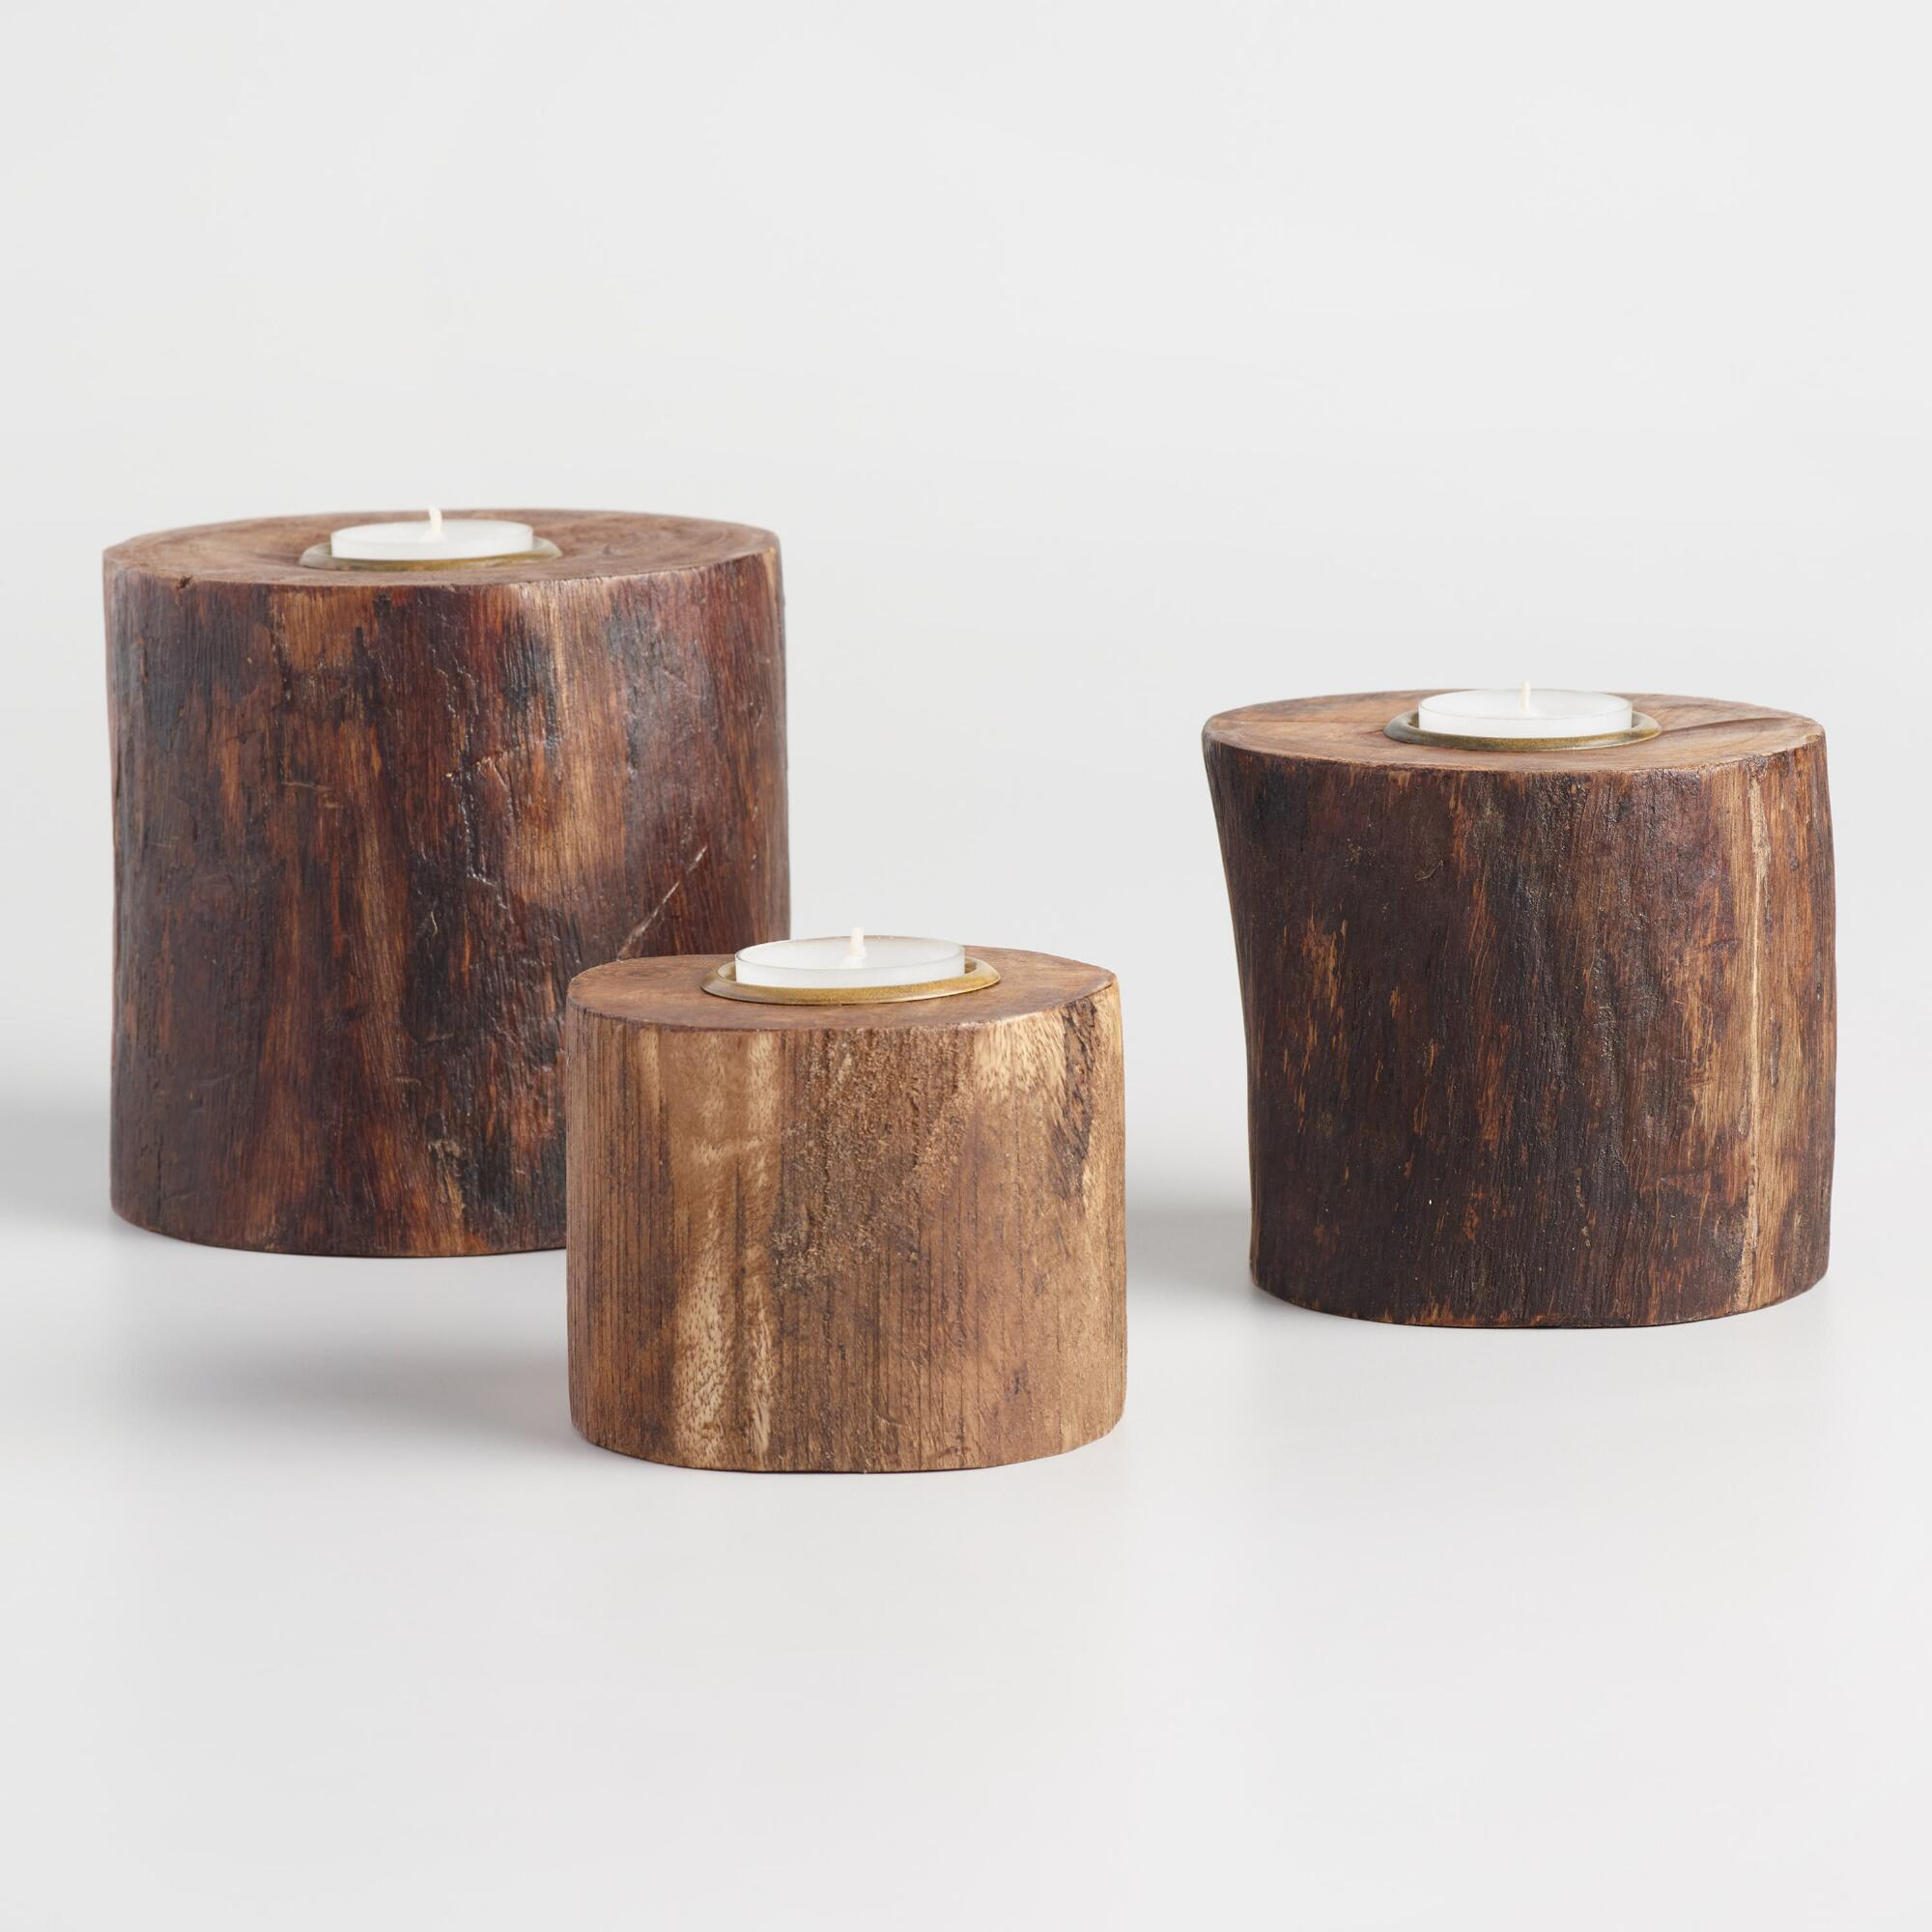 Wood Stump Tealight Candleholder - Small by World Market Small